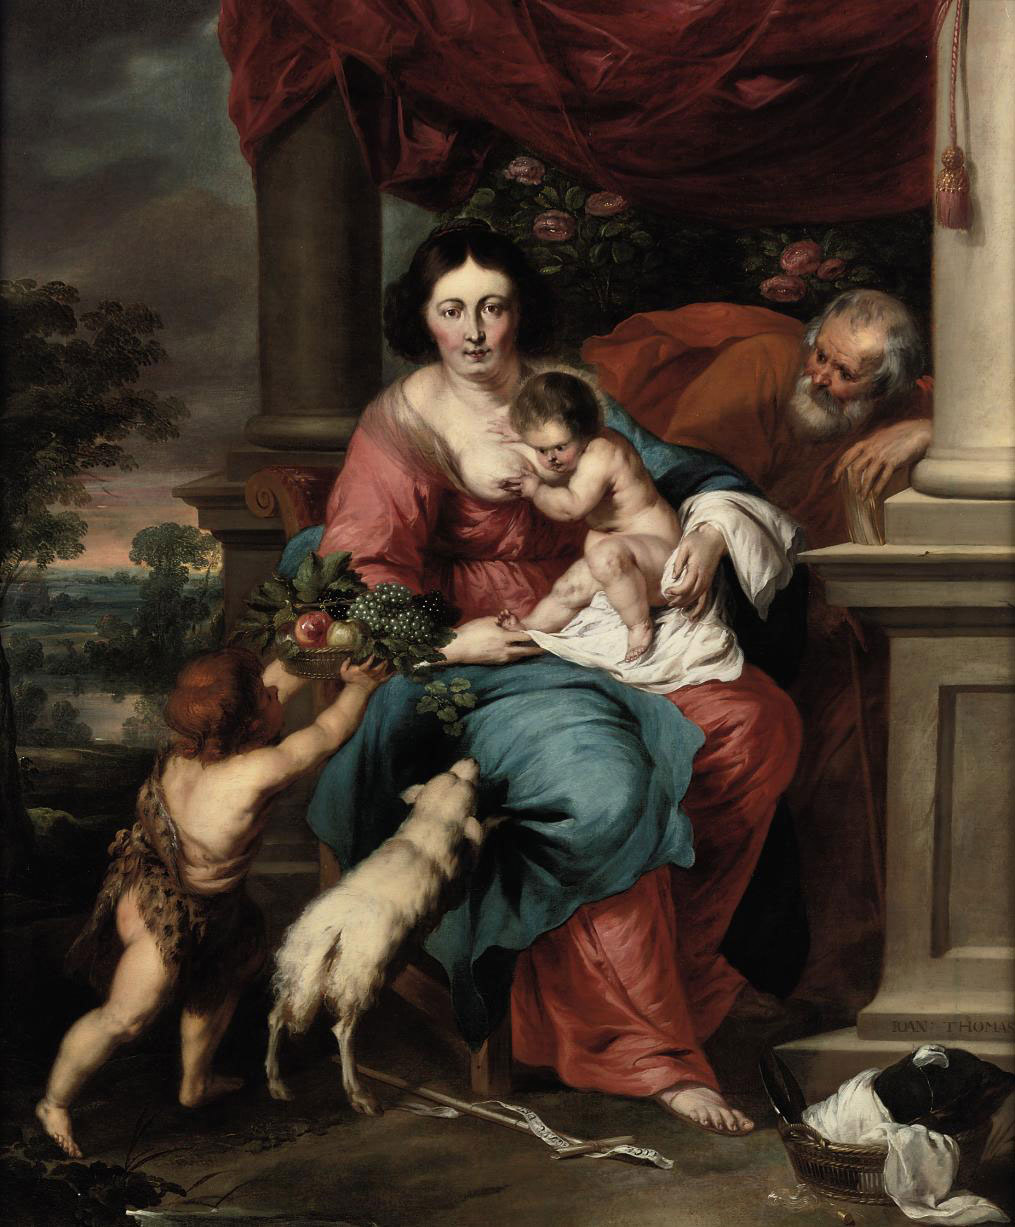 The Holy Family and the Infant St John holding a basket of fruit